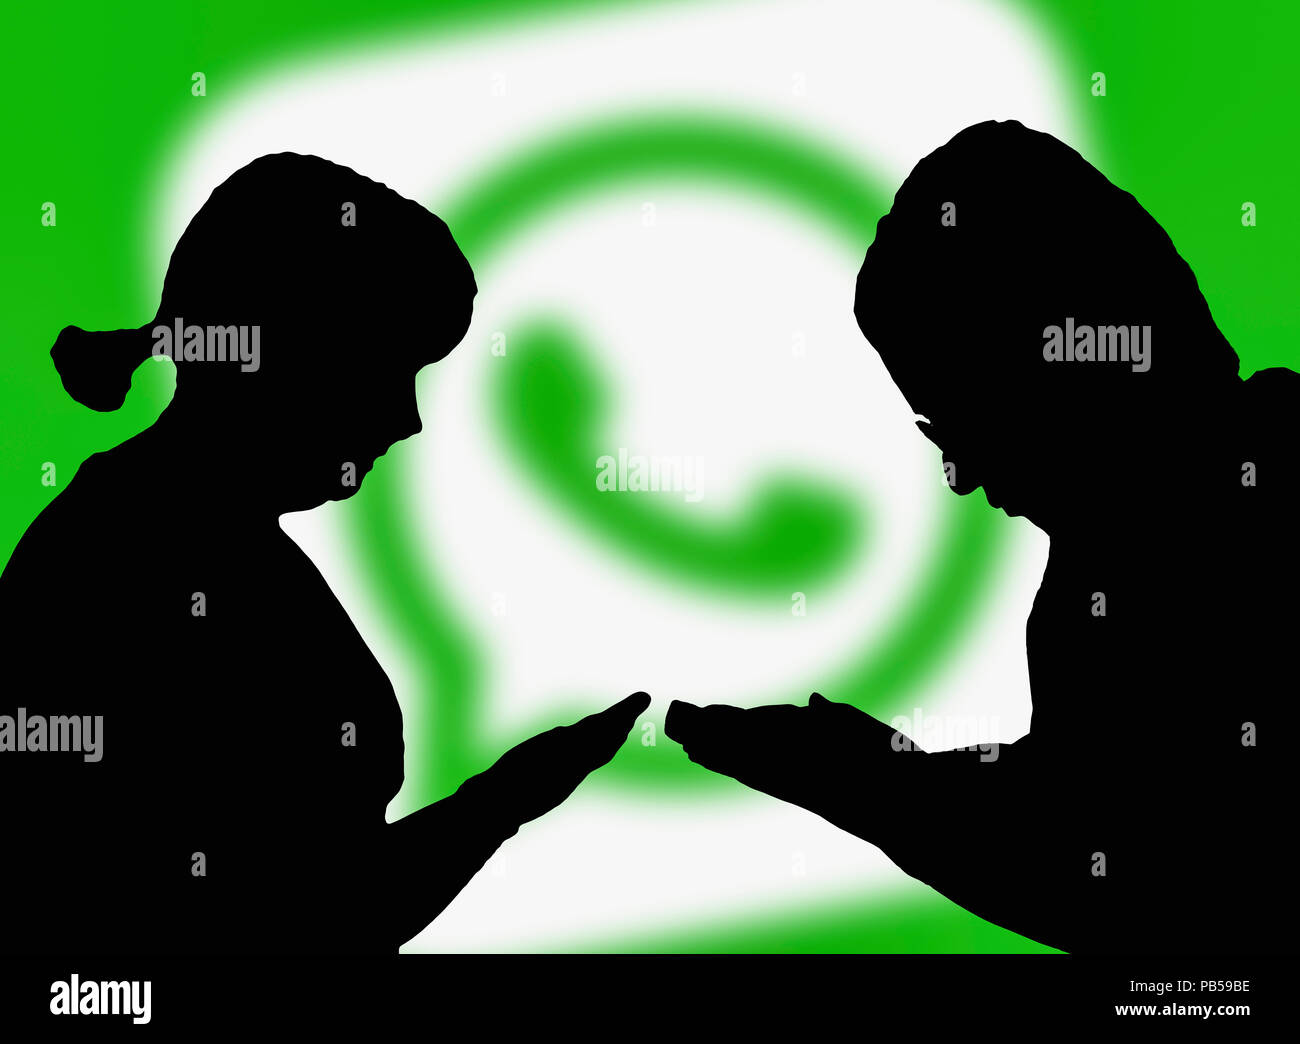 Silhouettes of a couple of people holding smartphones using the Whatsapp instant messaging app. Internet massaging online. Stock Photo